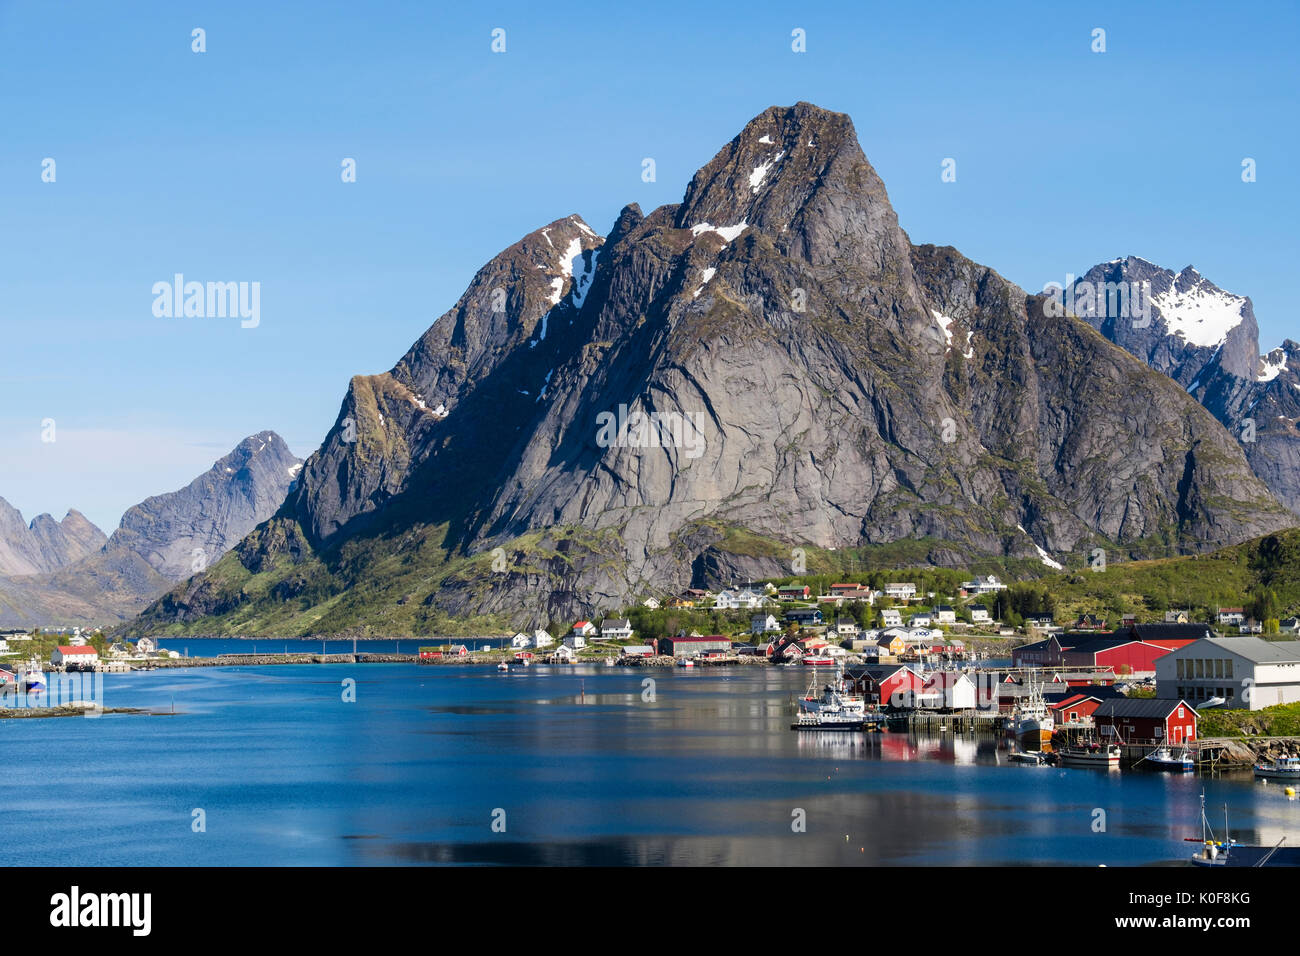 View across the natural fishing harbour to towering mountains above Reine, Moskenes, Moskenesøya Island, Lofoten Islands, Norway - Stock Image